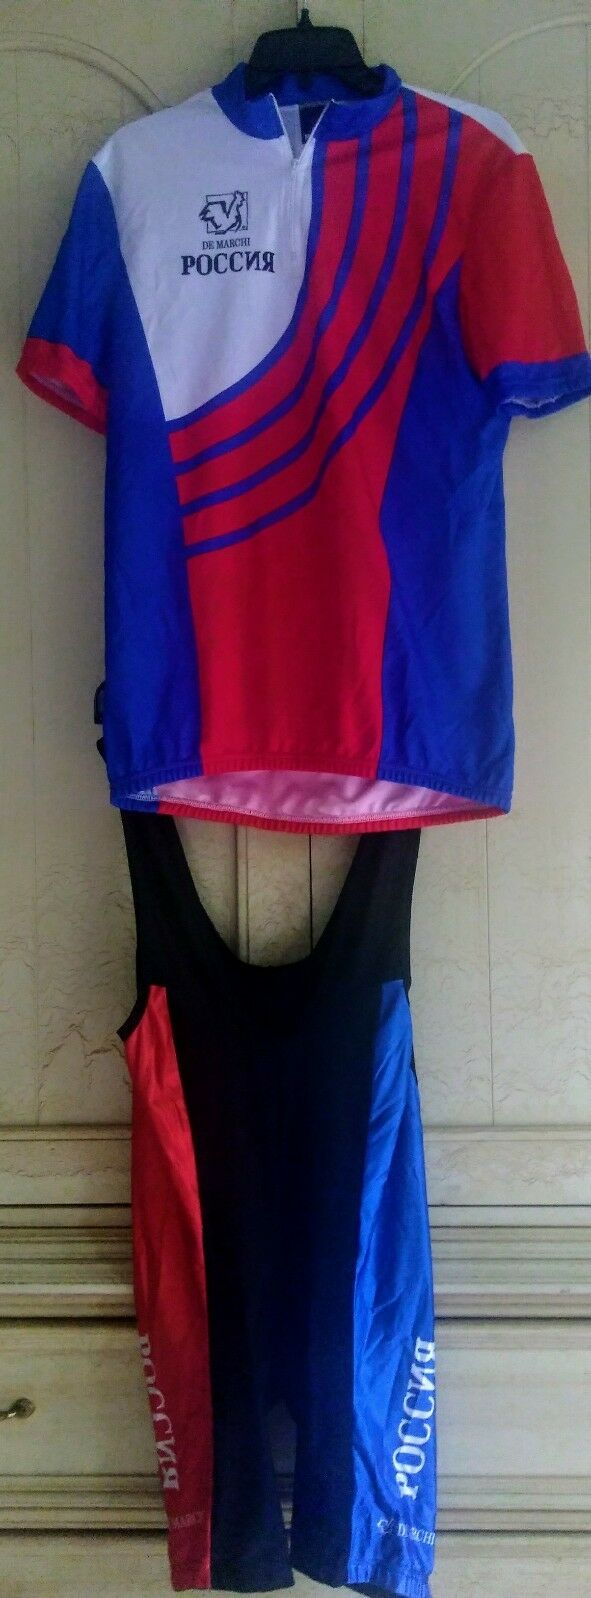 Men's De Mar  SET Russian   Cycling Jersey Size XXL And Bib Shorts Size XL  brand on sale clearance